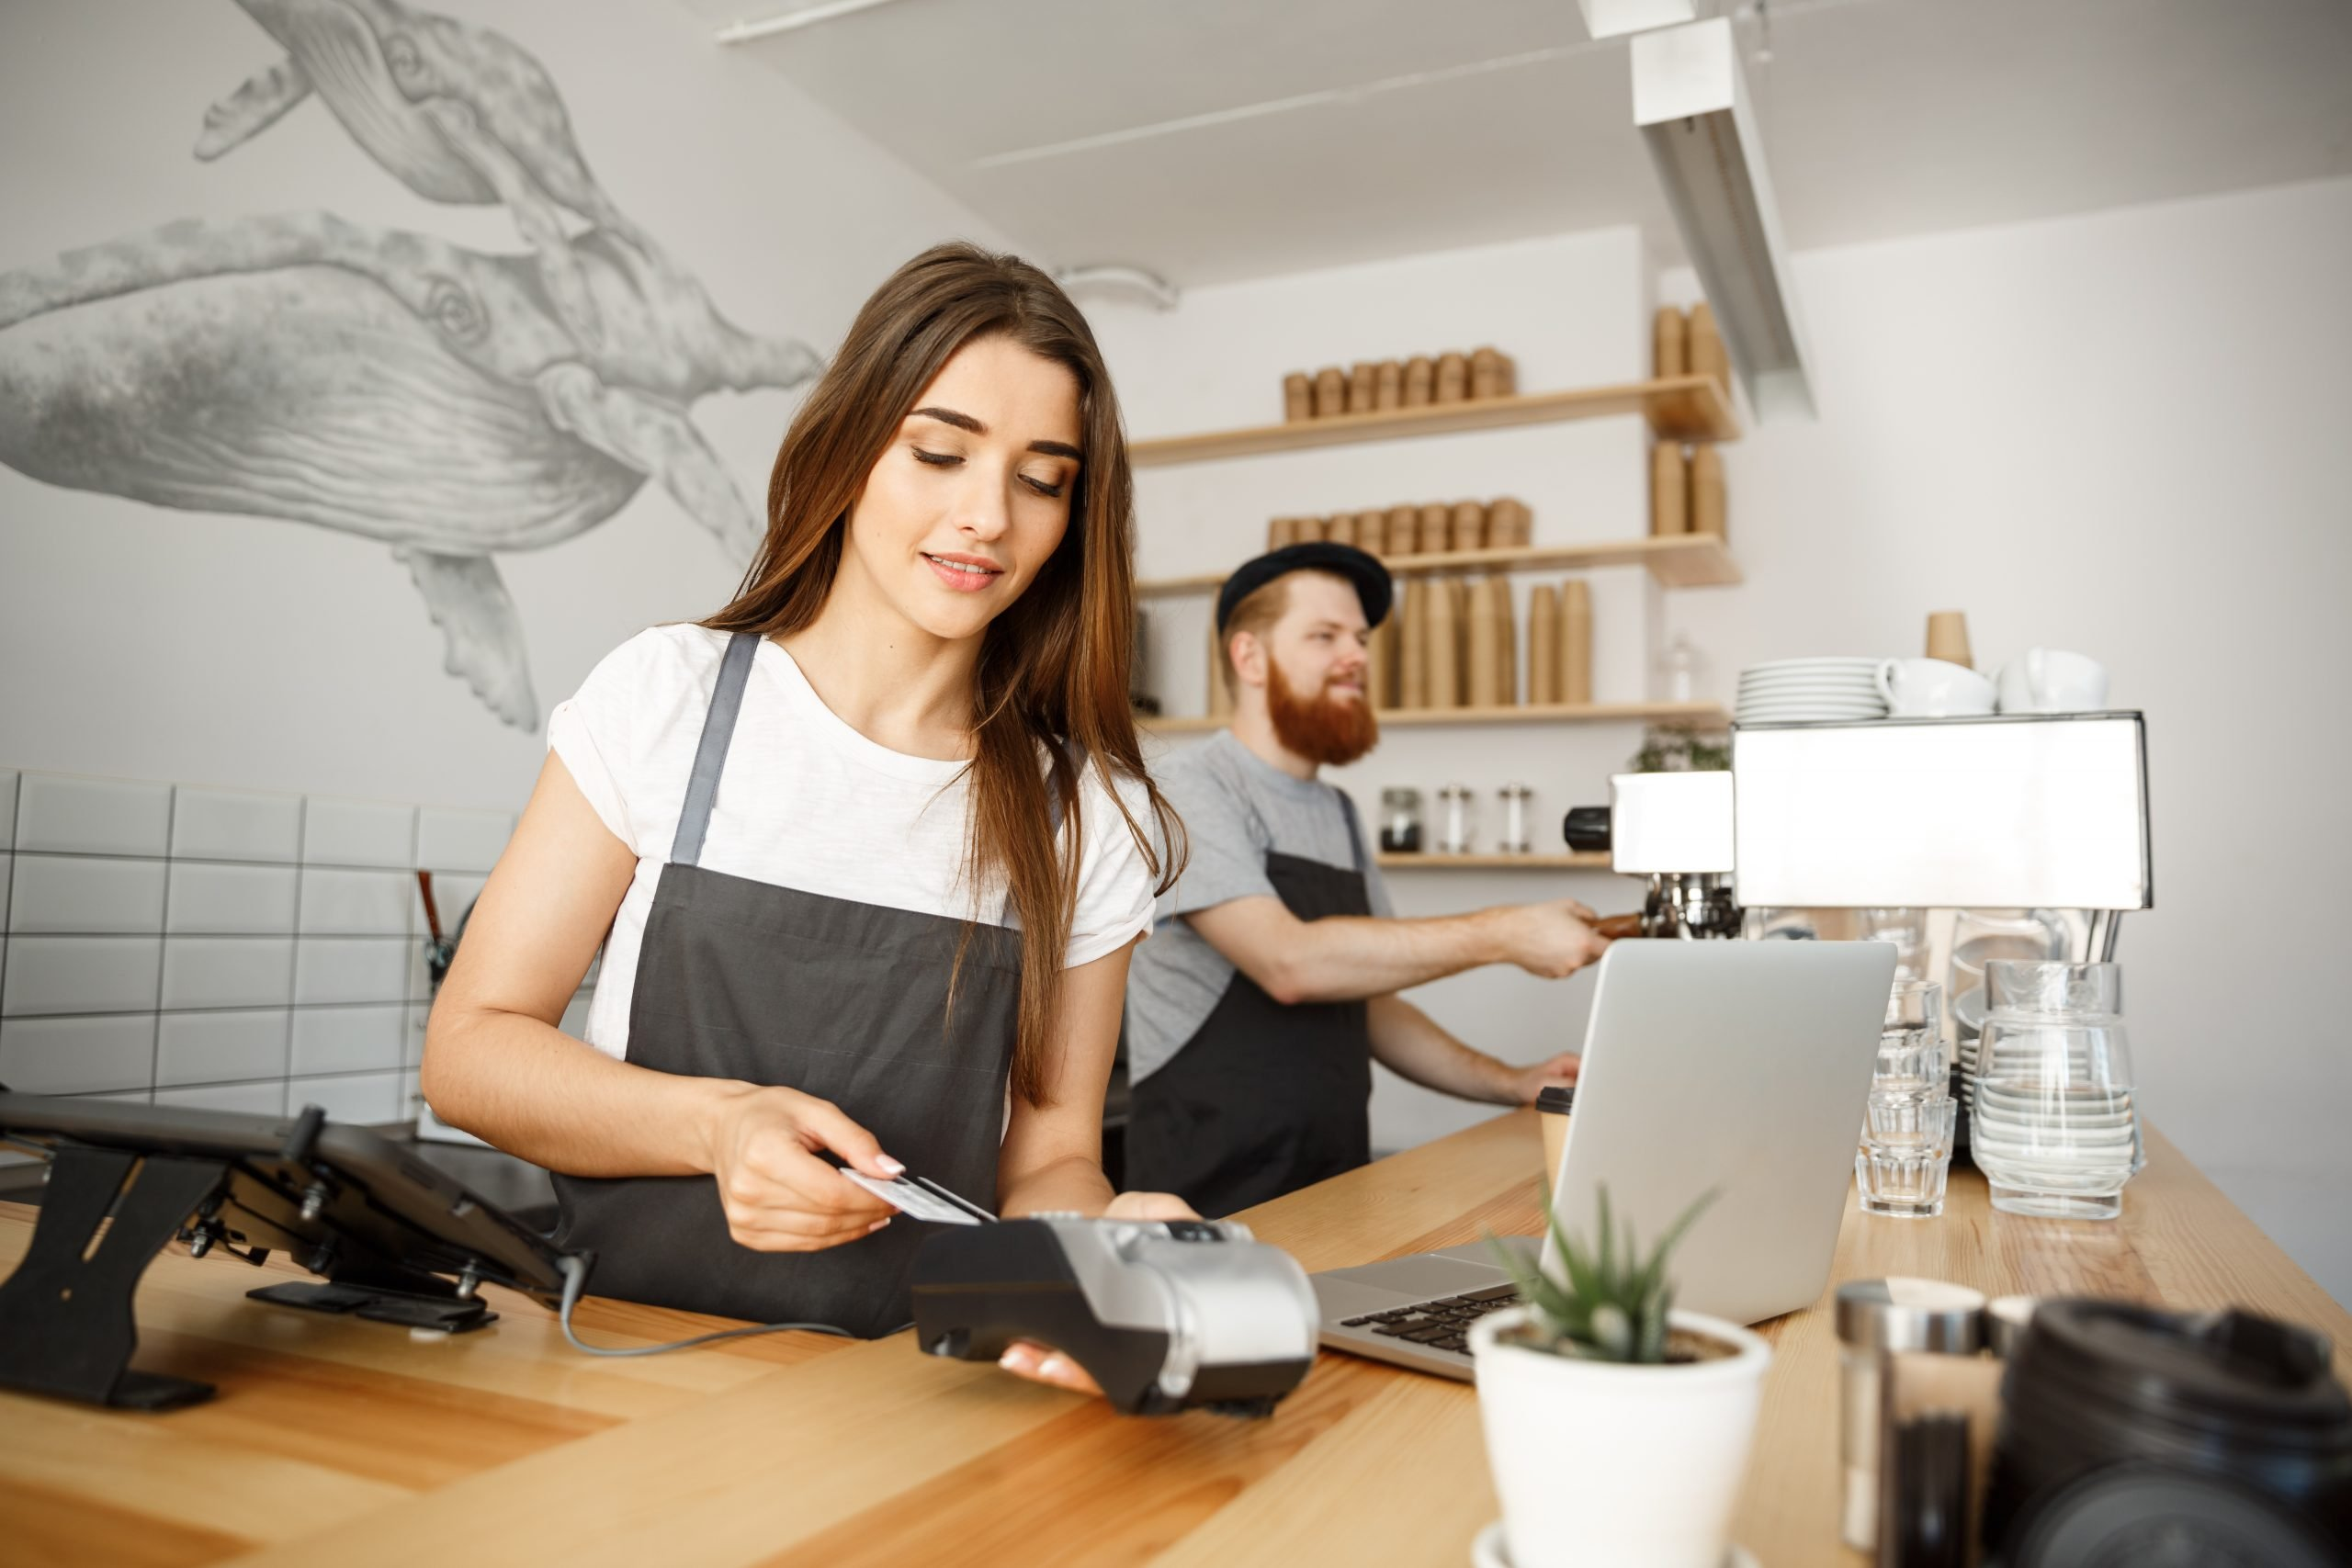 Barista taking credit card payment with a EMV payment terminal